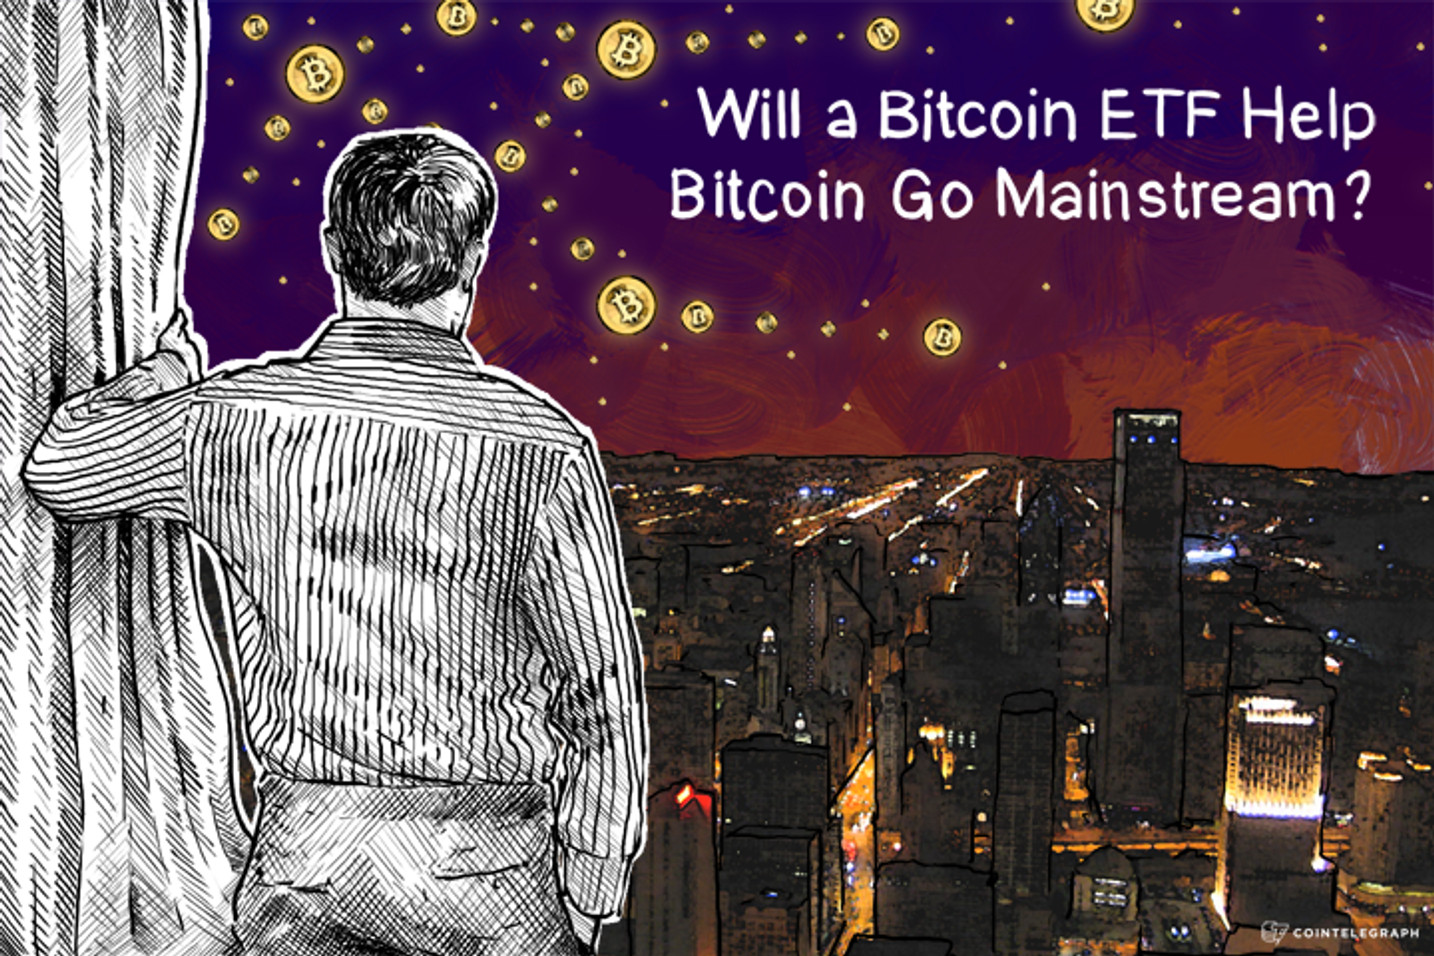 Will a Bitcoin ETF Help Bitcoin Go Mainstream?